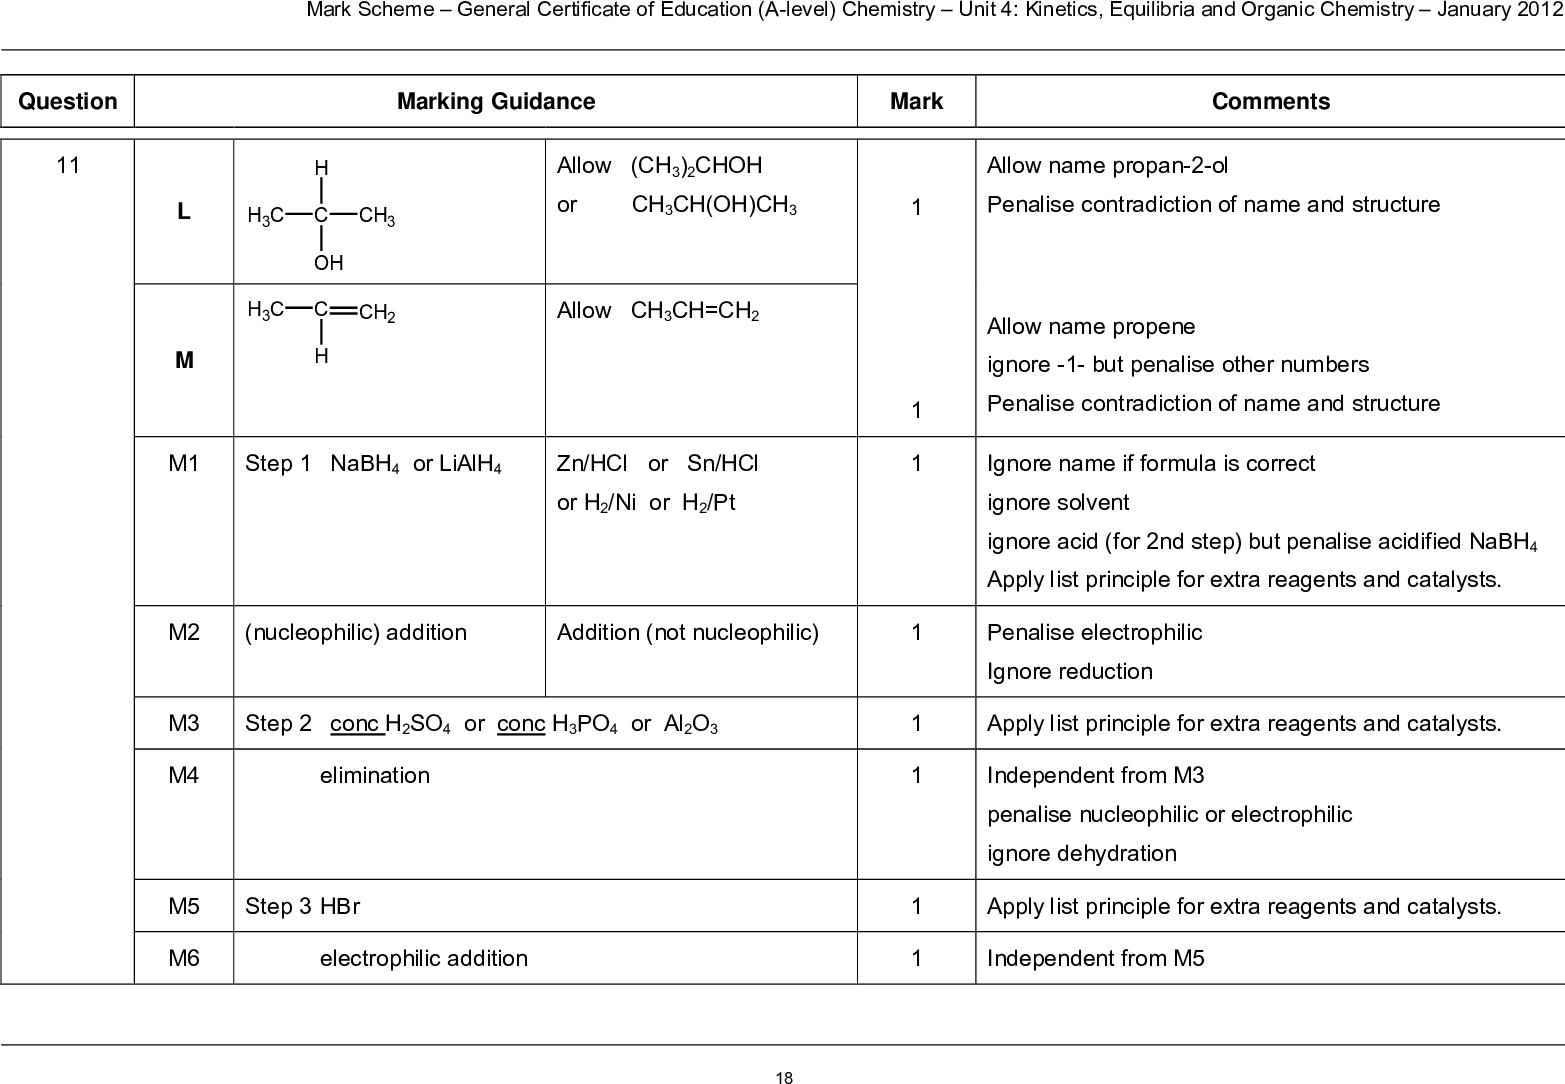 question mark scheme general certificate of education a level chemistry unit kinetics equilibria and organic chemistry january marking guidance mark comments h c h c oh ch ch allow ch choh or ch ch oh ch allow ch ch ch m step nabh or lialh zn hcl or sn hcl or h ni or h pt m nucleophilic addition addition not nucleophilic m m m m step conc h so or conc h po or al o elimination step hbr electrophilic addition allow name propan ol penalise contradiction of name and structure allow name propene ignore but penalise other numbers penalise contradiction of name and structure ignore name if formula is correct ignore solvent ignore acid for nd step but penalise acidified nabh apply list principle for extra reagents and catalysts penalise electrophilic ignore reduction apply list principle for extra reagents and catalysts independent from m penalise nucleophilic or electrophilic ignore dehydration apply list principle for extra reagents and catalysts independent from m